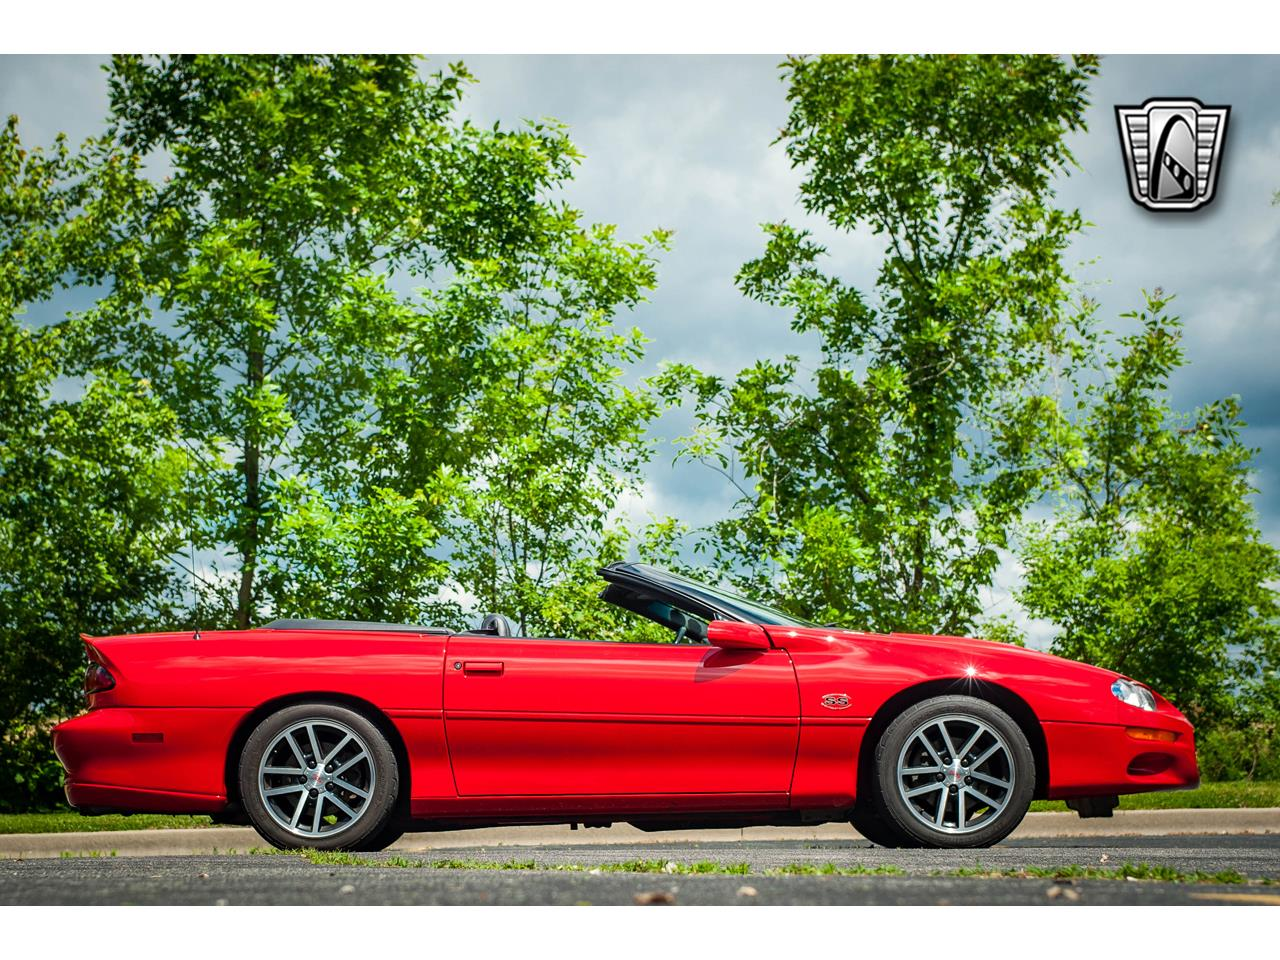 Large Picture of 2002 Chevrolet Camaro located in Illinois Offered by Gateway Classic Cars - St. Louis - QB9Z